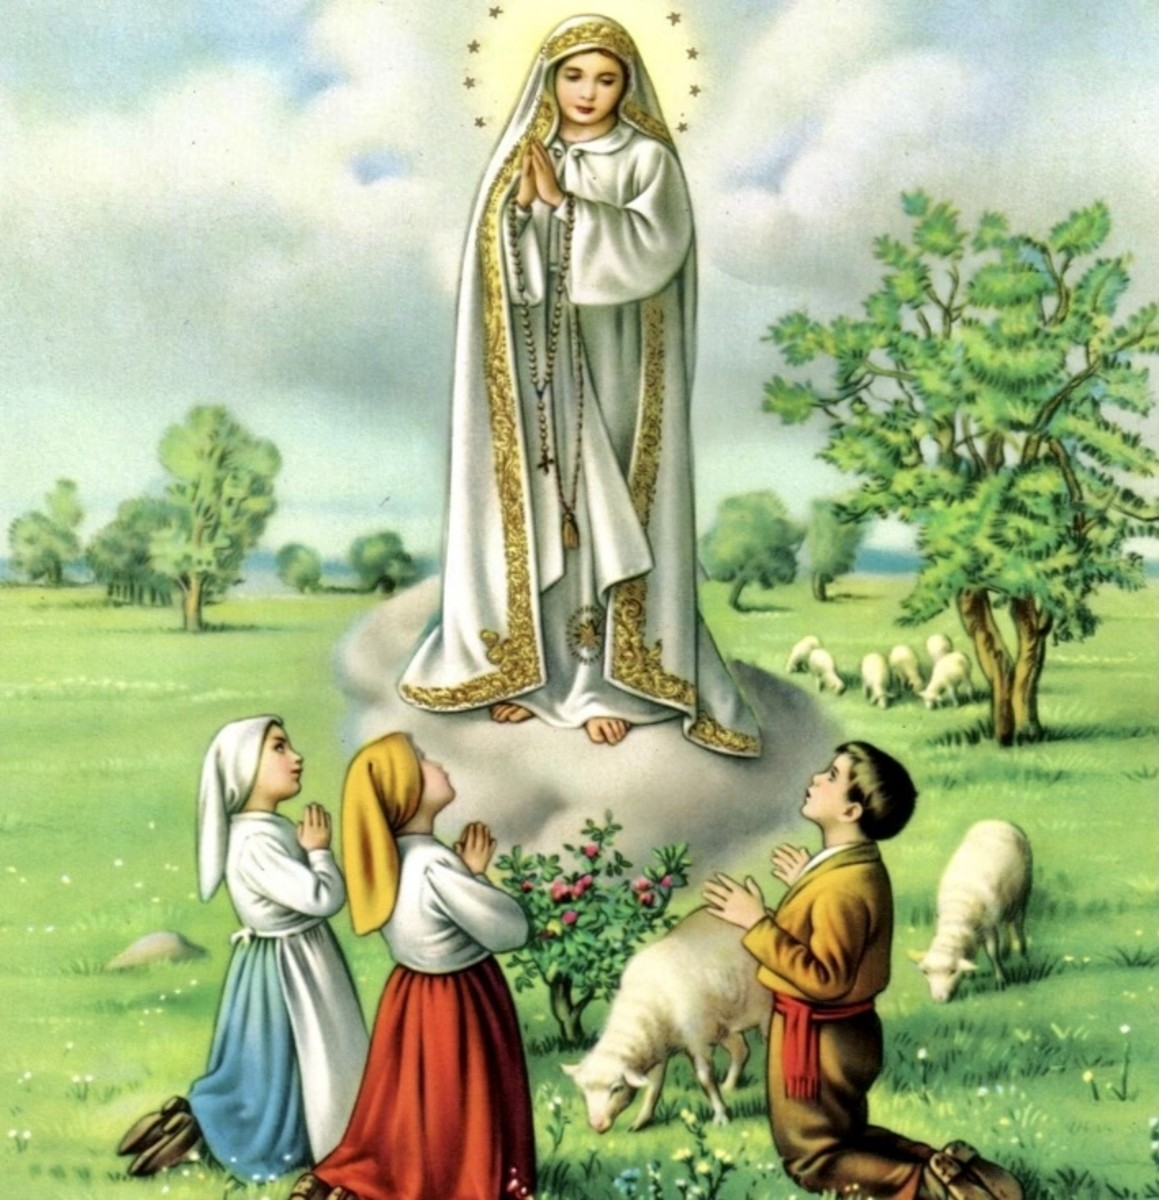 Our Lady of Fatima, pray for us....